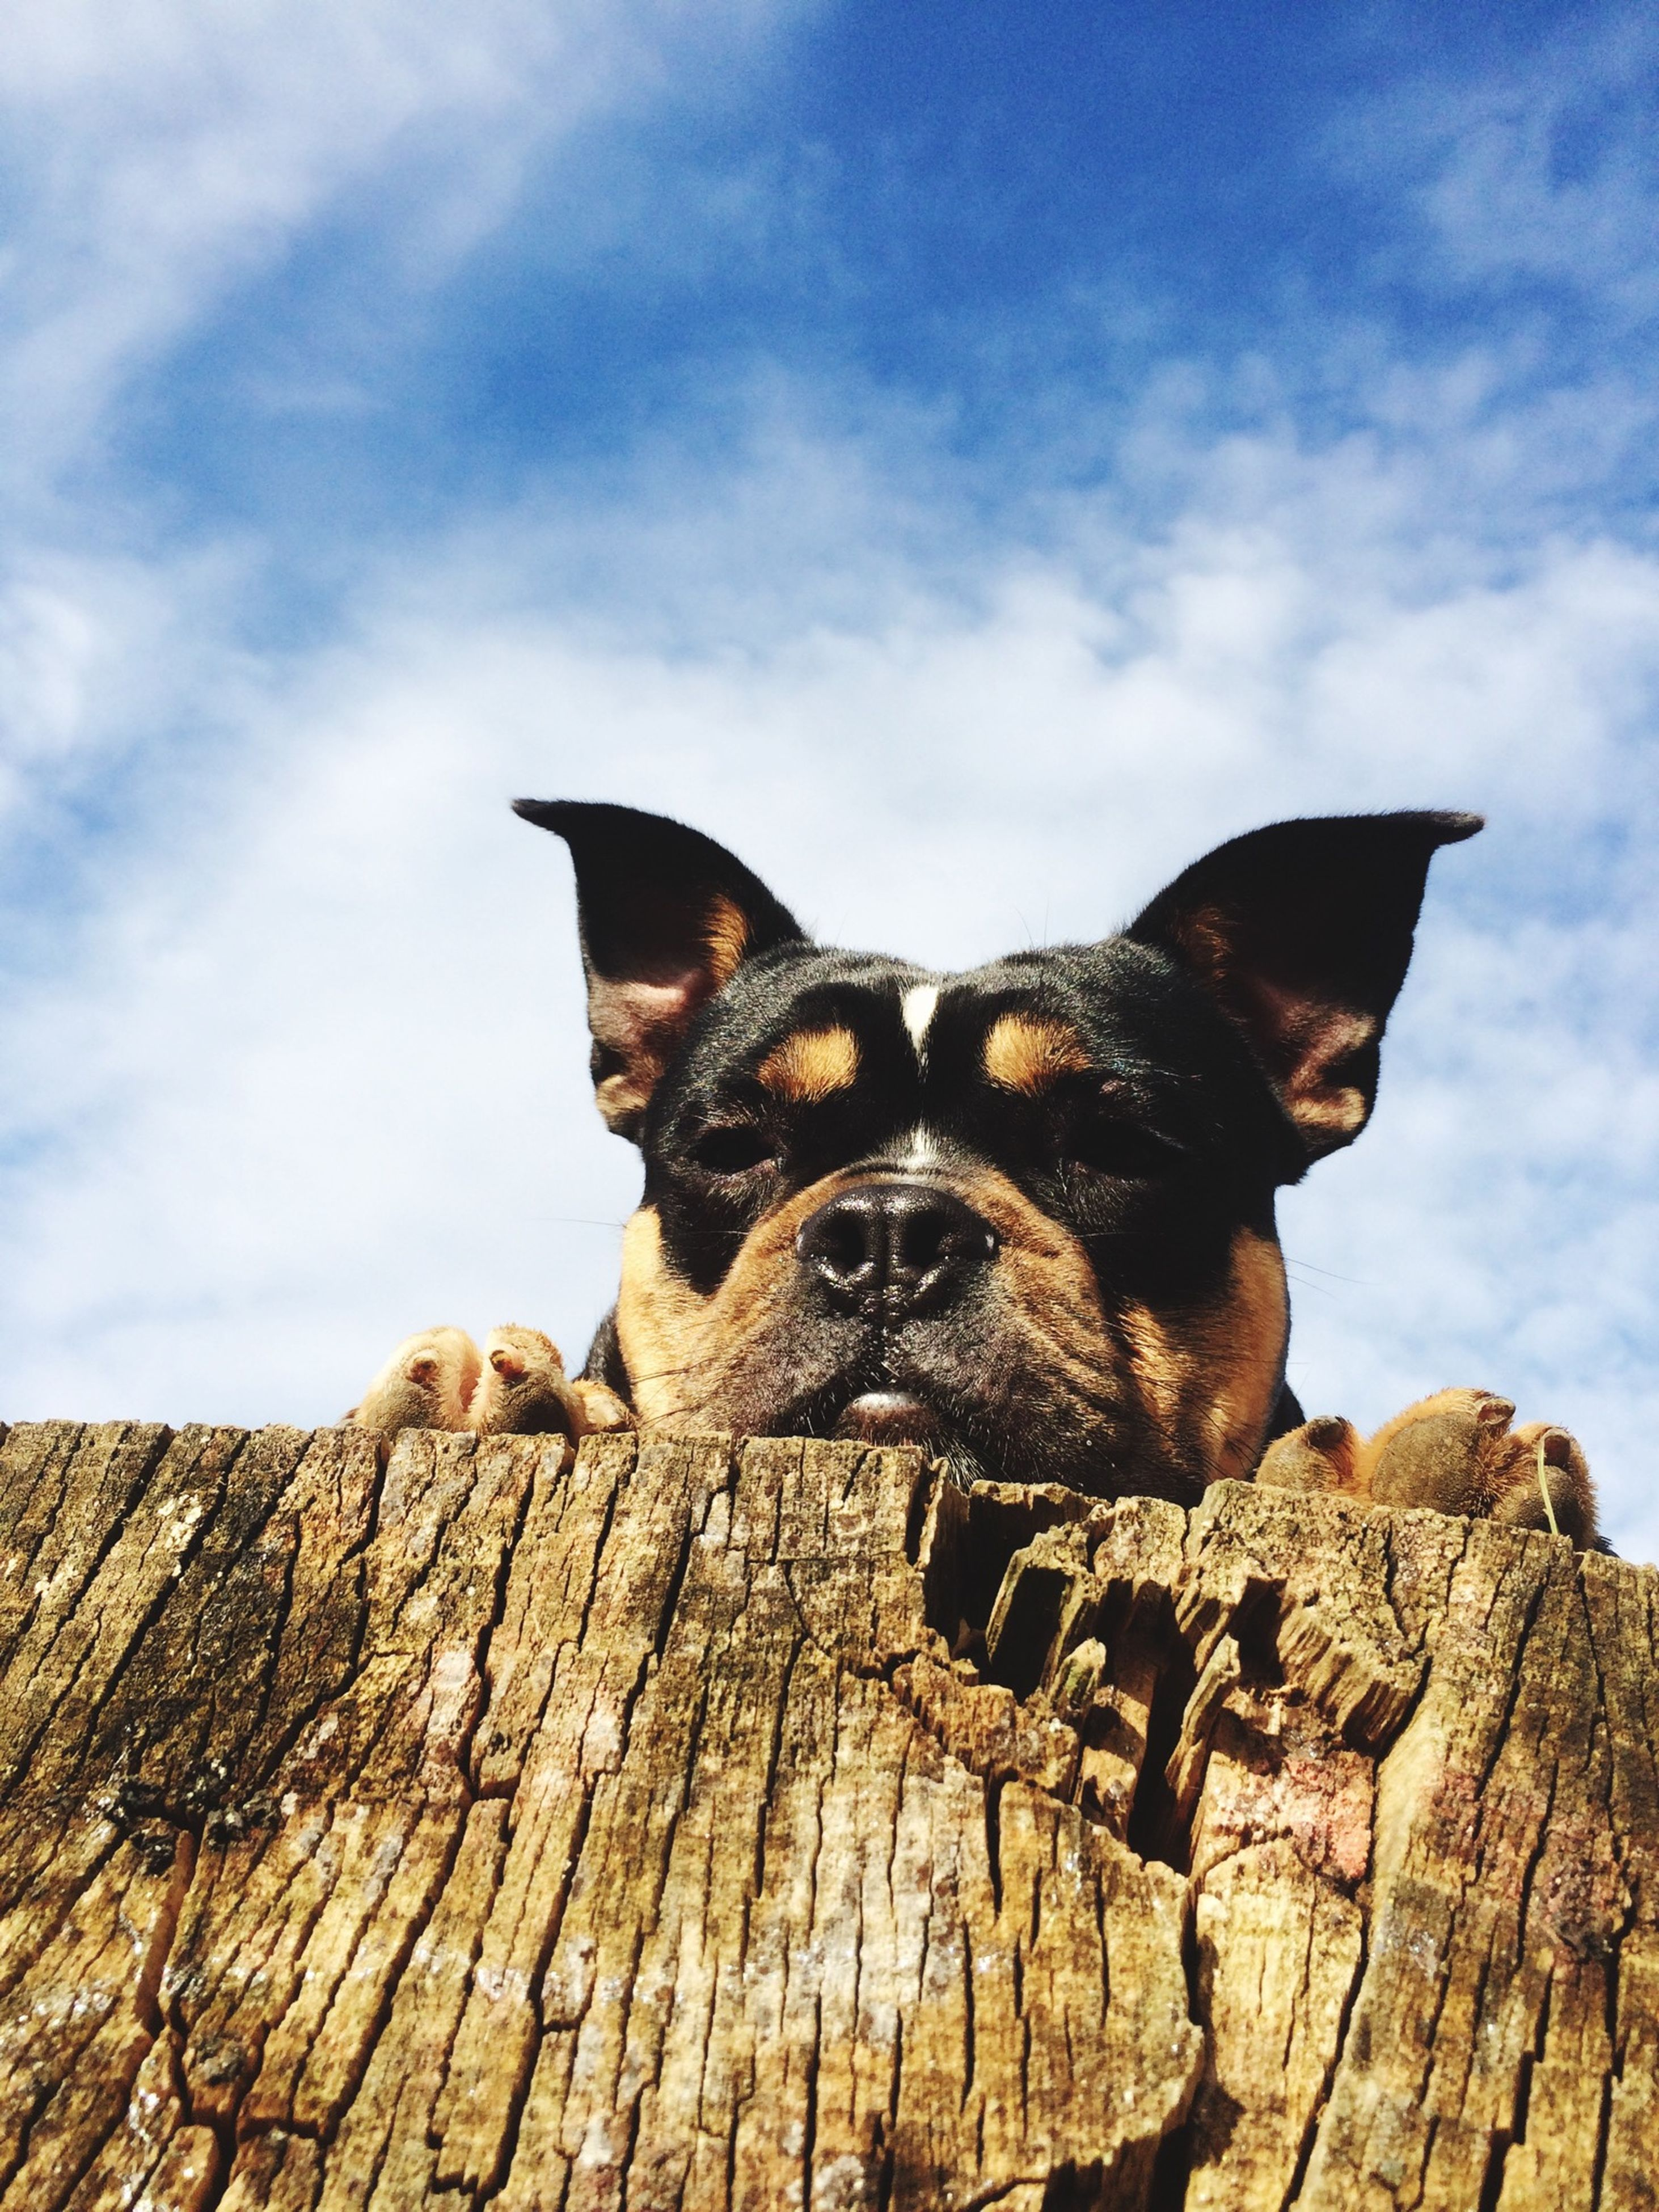 animal themes, one animal, mammal, domestic animals, pets, sky, portrait, looking at camera, low angle view, dog, cloud - sky, sitting, outdoors, cloud, full length, day, no people, wood - material, sunlight